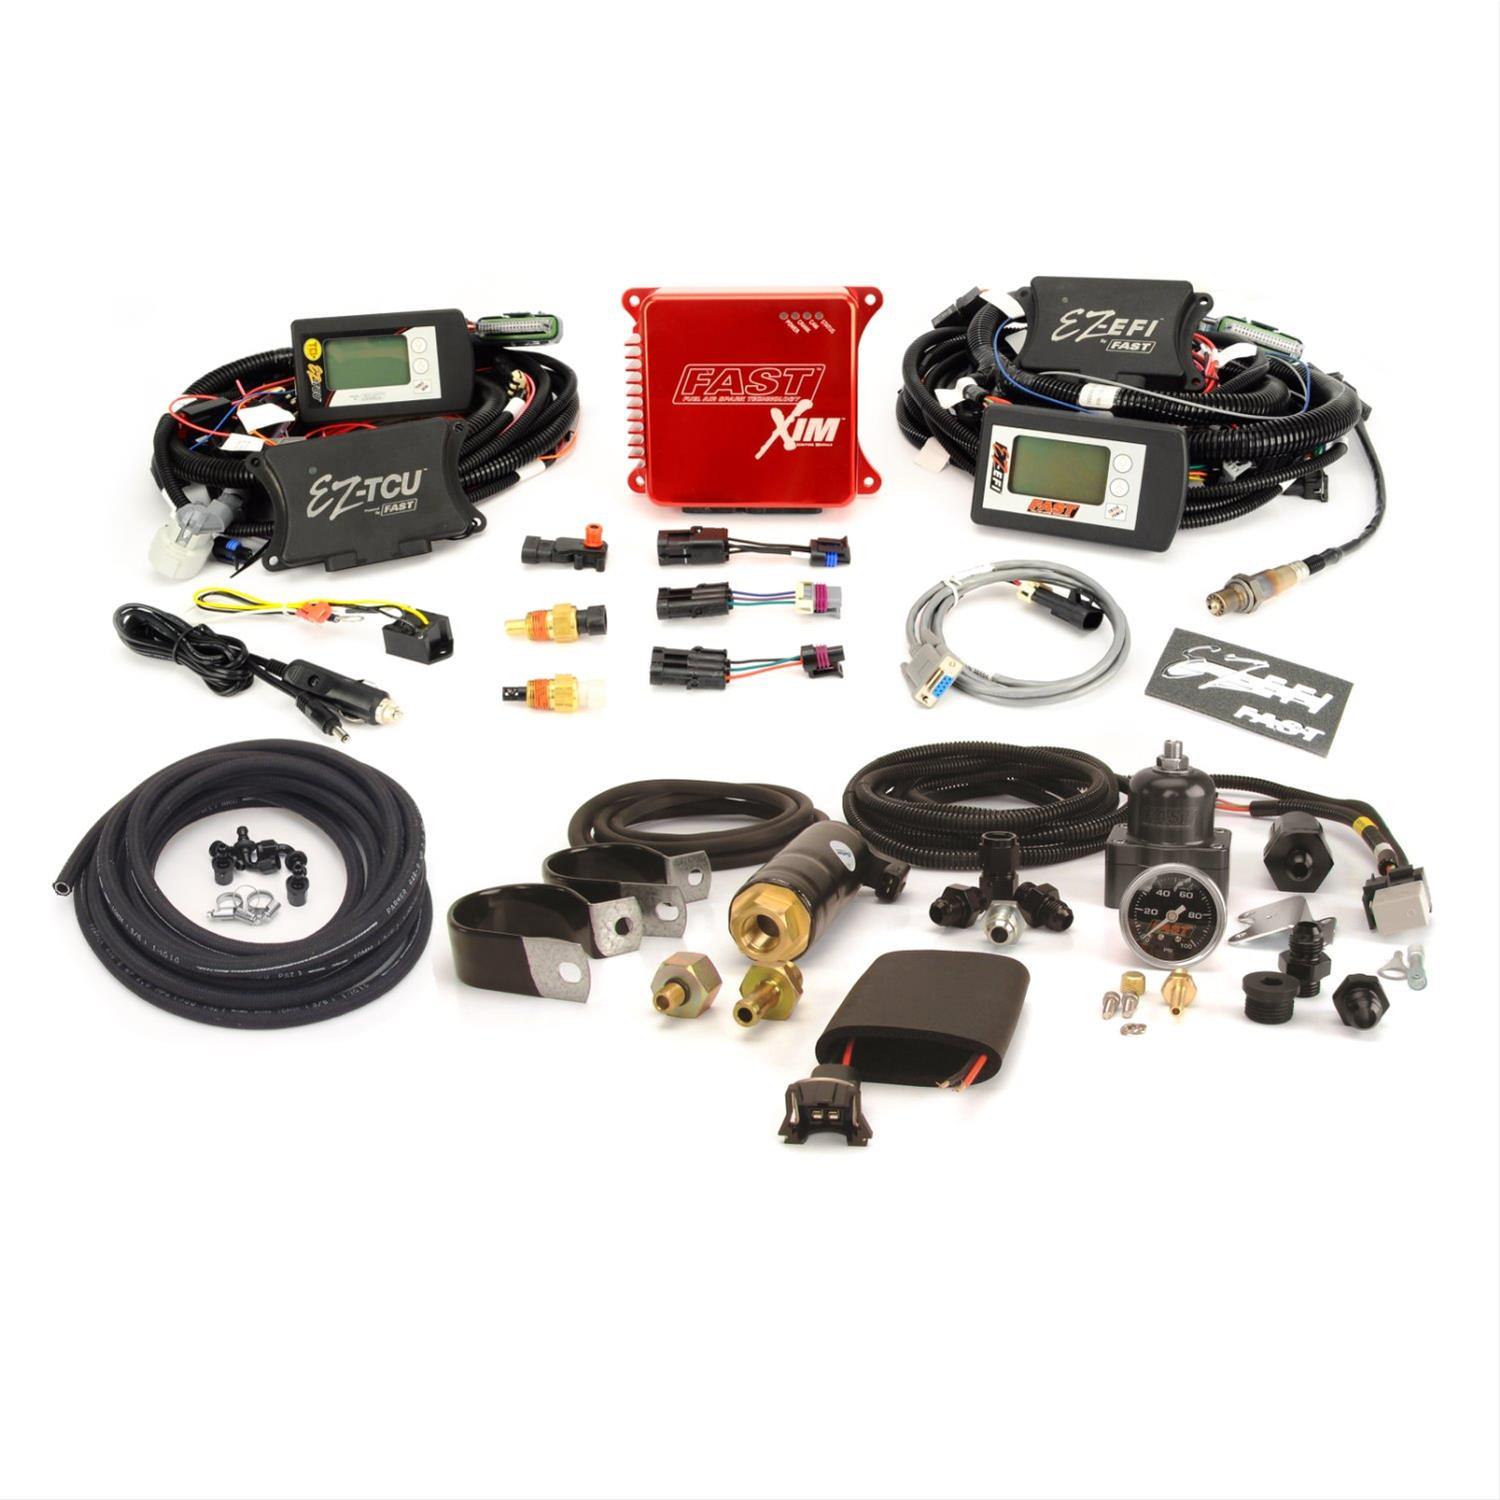 FAST EZ-EFI Multi-Port Self-Tuning Fuel Injection Systems 302002L-TCU